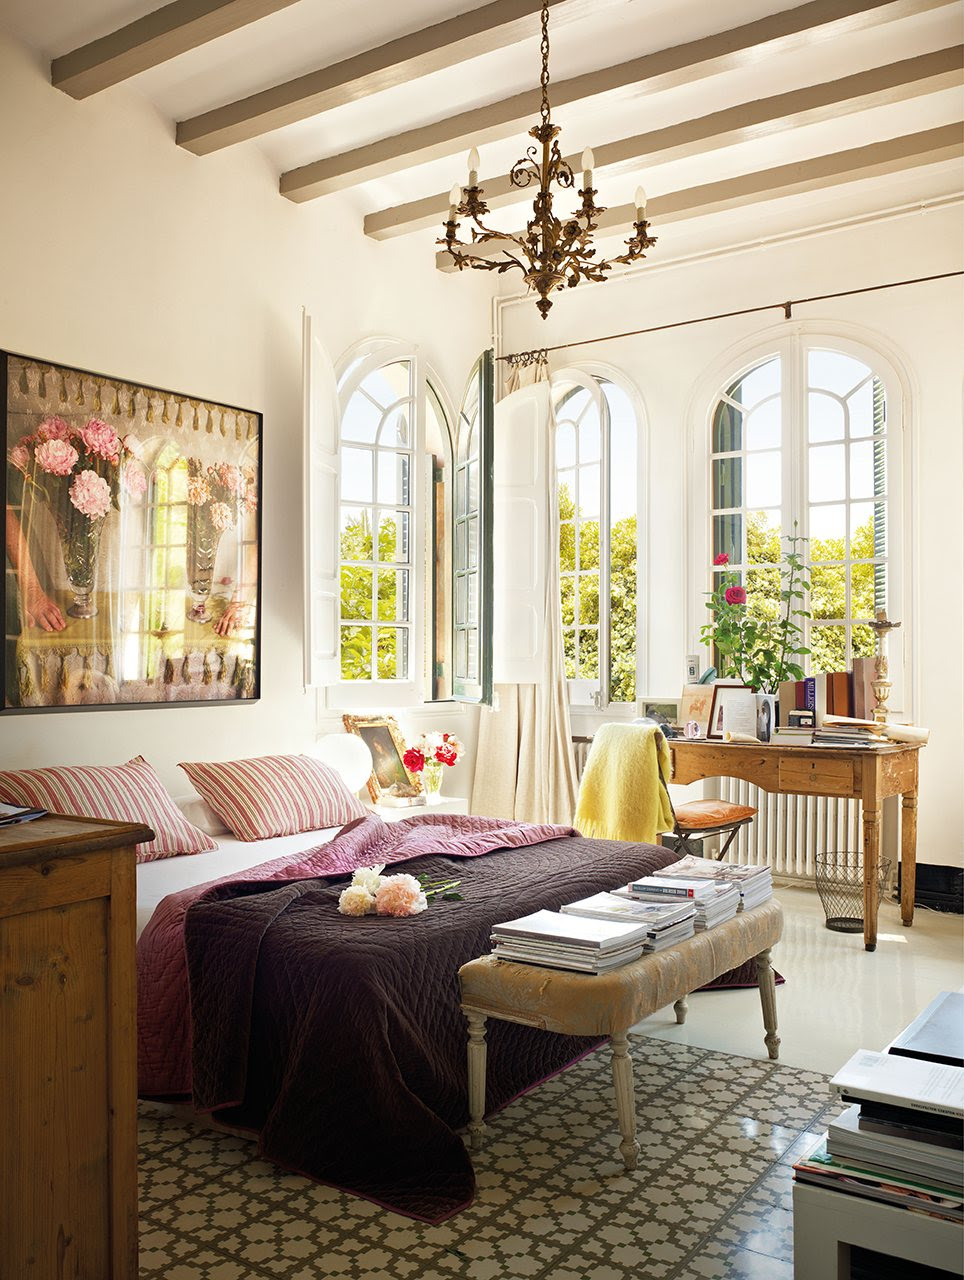 Beautiful Bedroom Interior Design | Bedroom Design ...